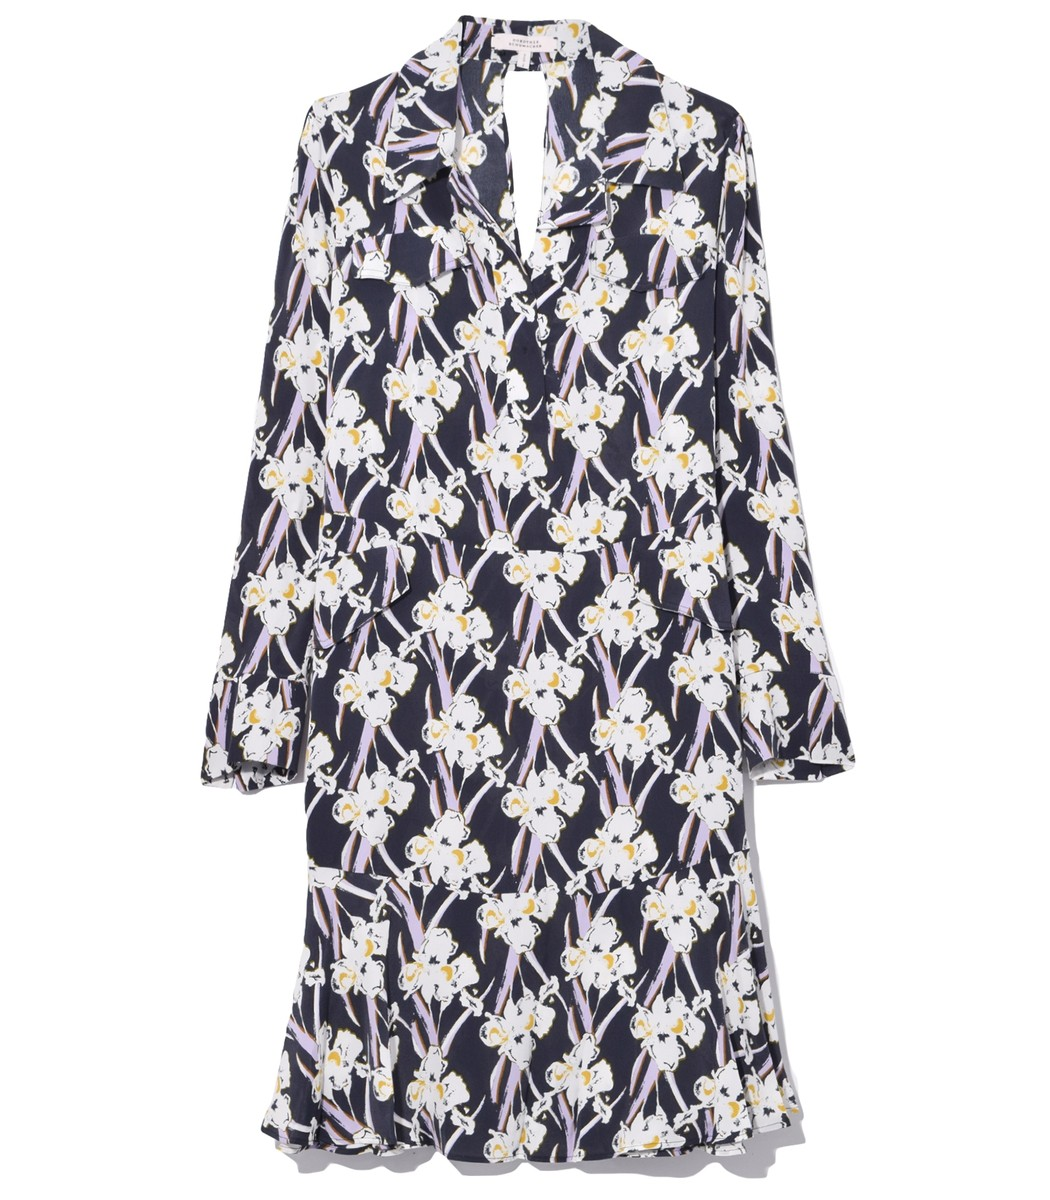 Dorothee Schumacher Dresses Flower Breeze Dress in Dark Blue Orchid